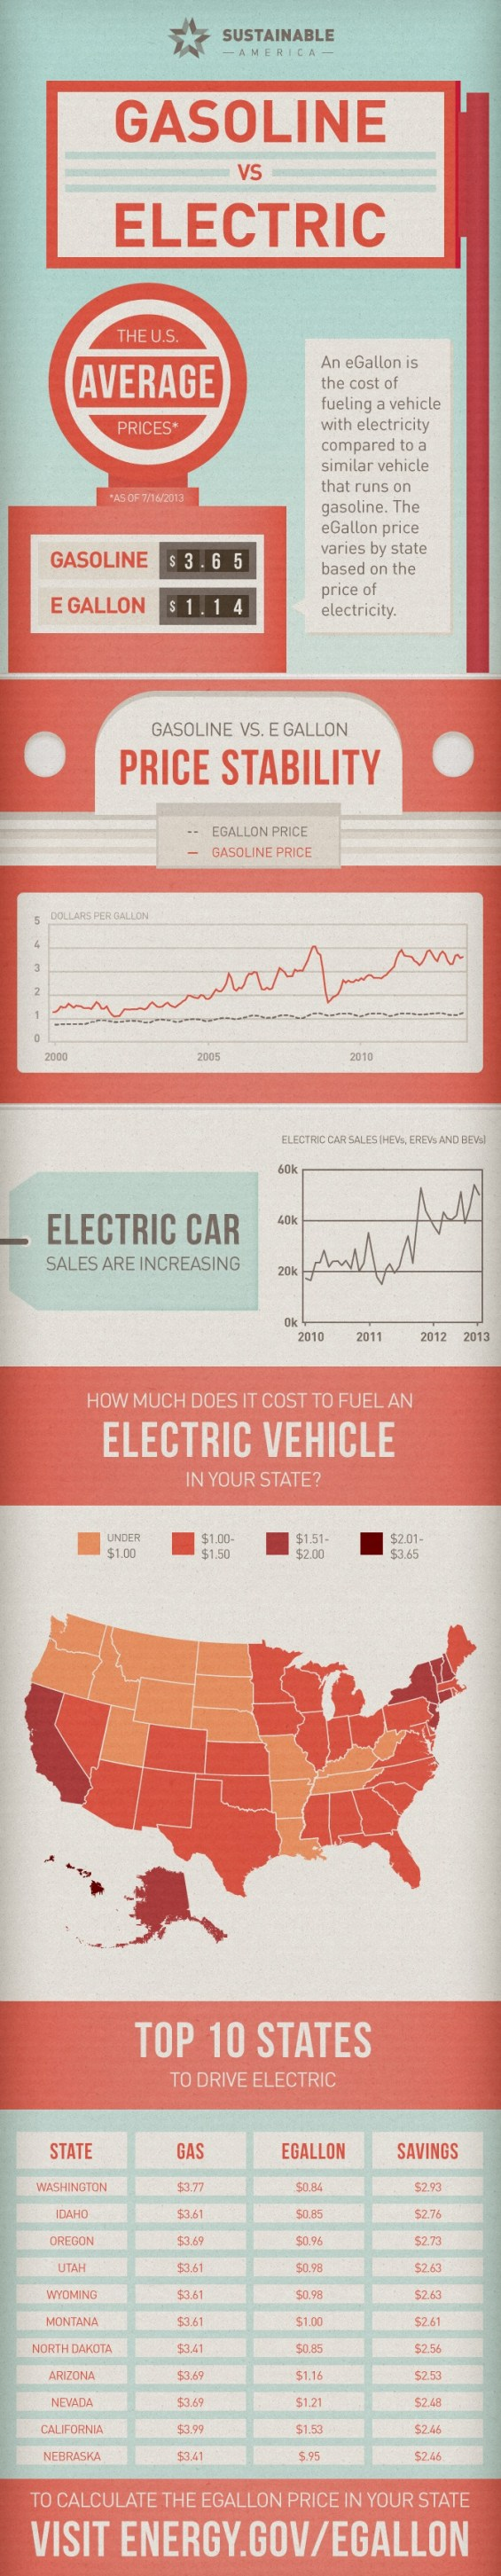 Gasoline vs Electric Cars Infographic